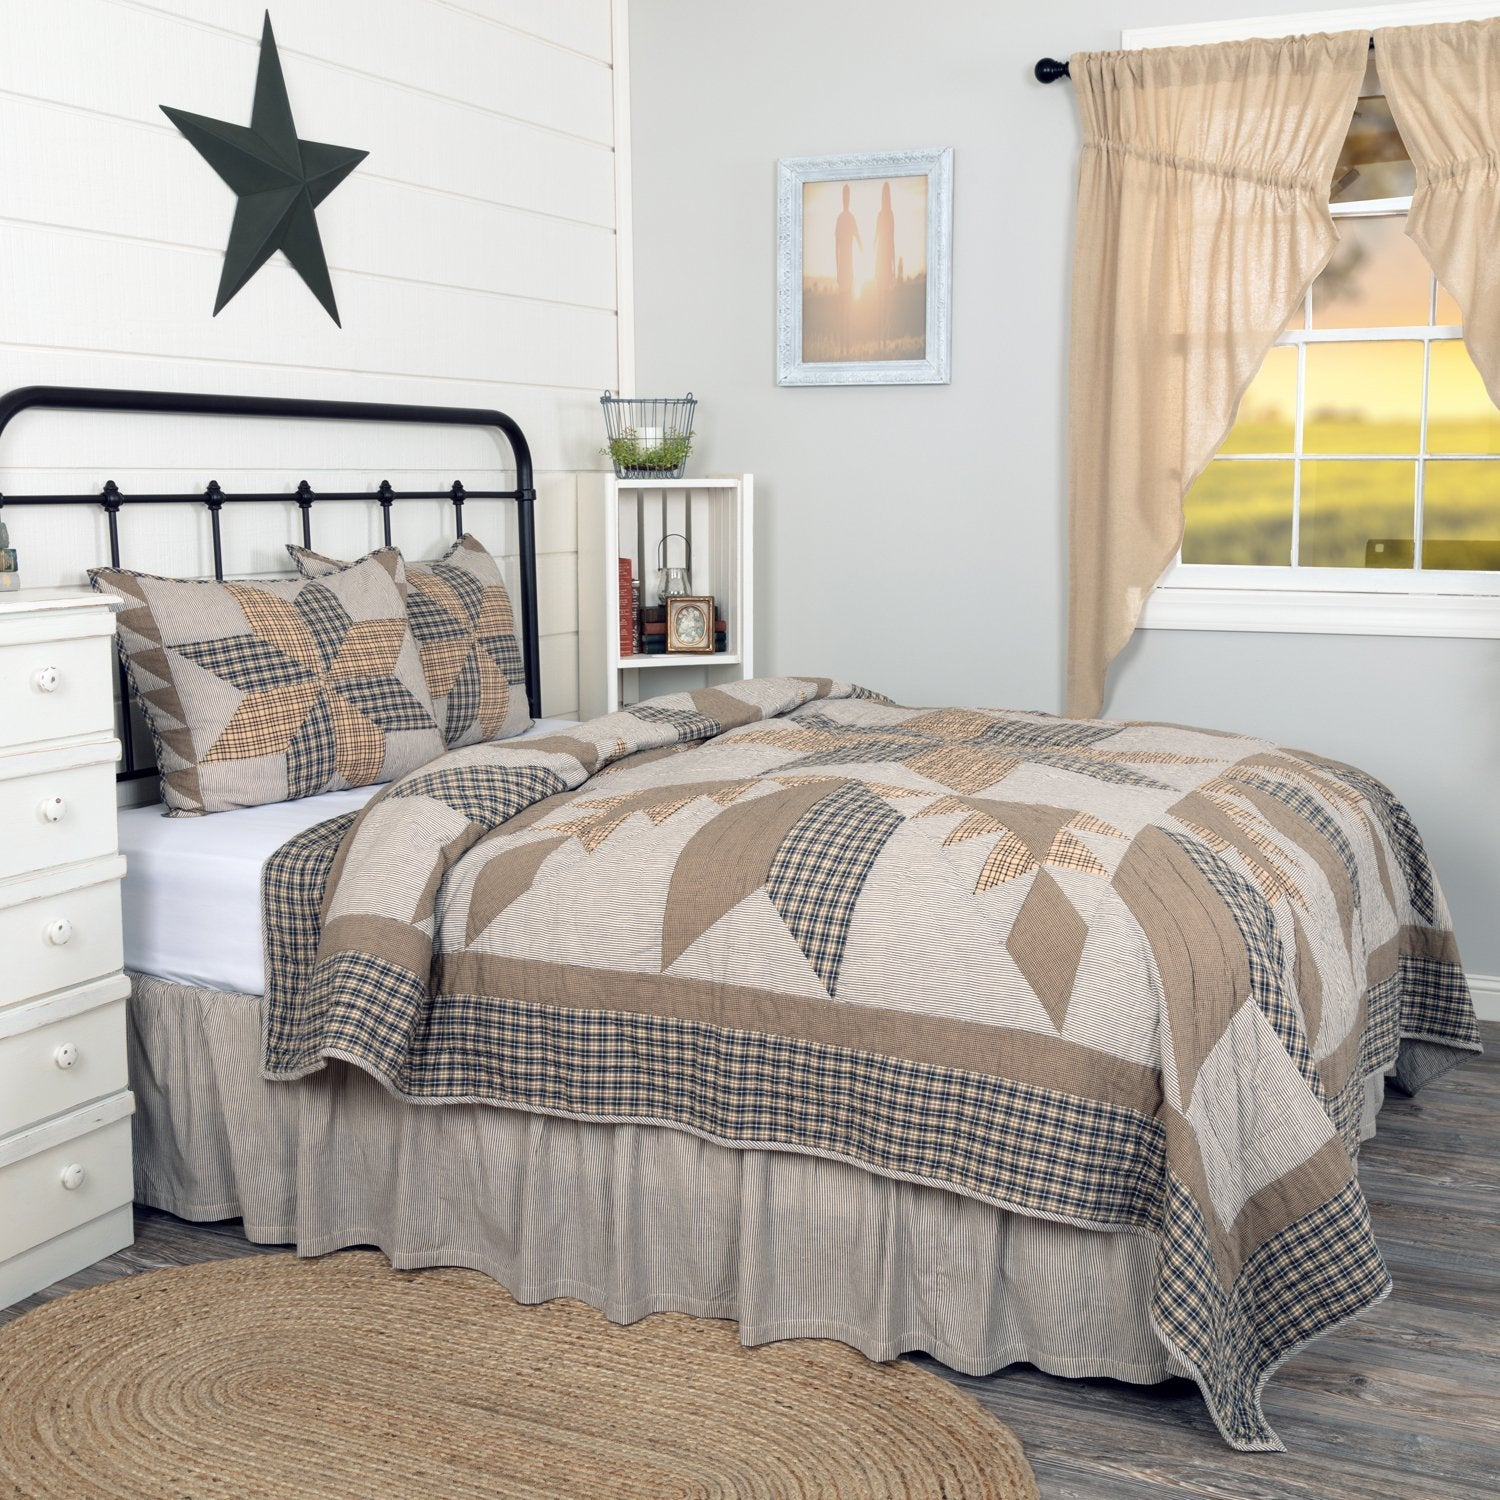 Dakota Star Farmhouse Blue Quilt Set.